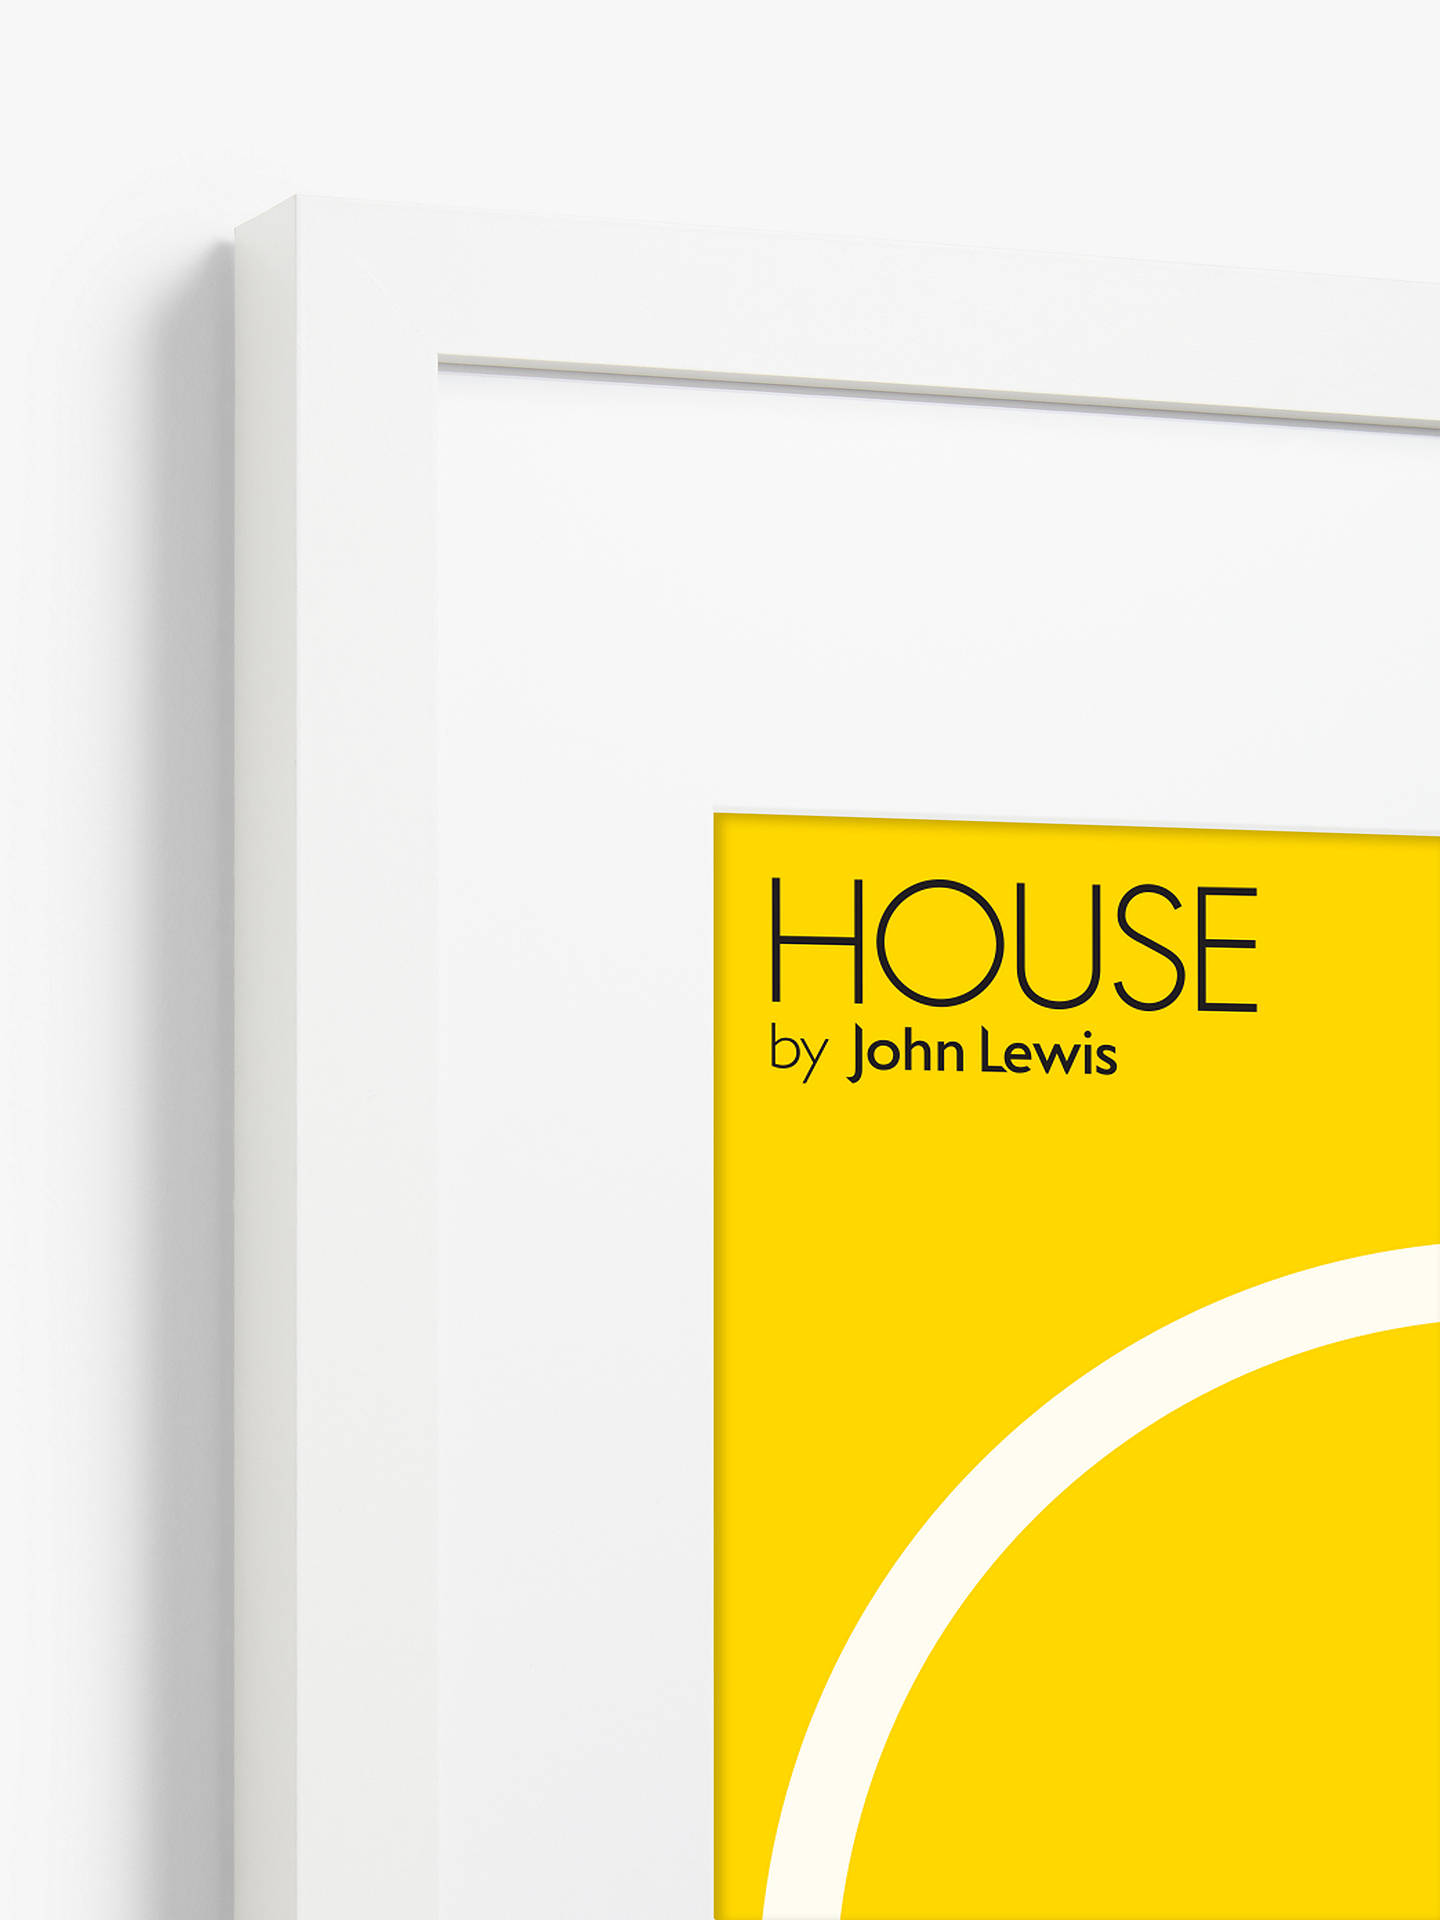 Buy House by John Lewis Poster Frame & Mount, White, A2 (42 x 60cm) Online at johnlewis.com